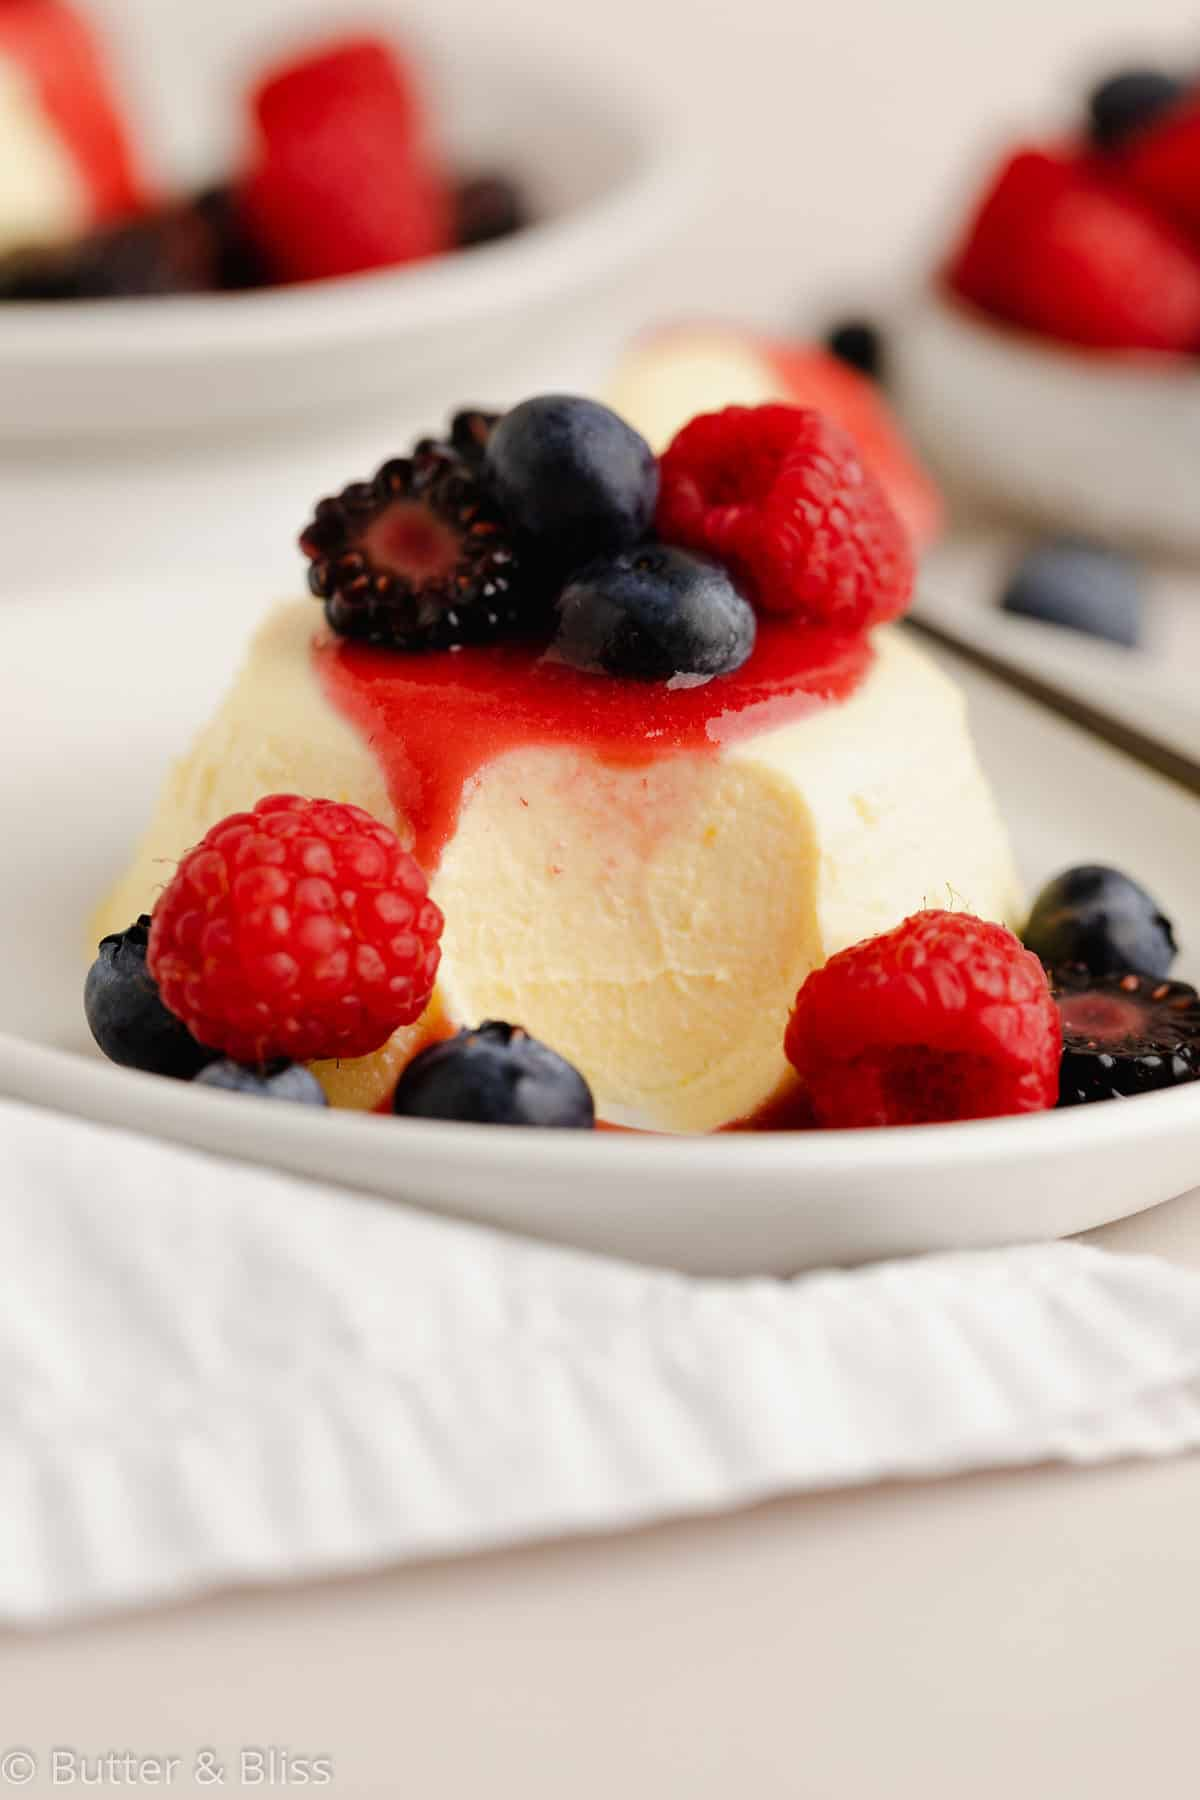 A bite of panna cotta with summer berries